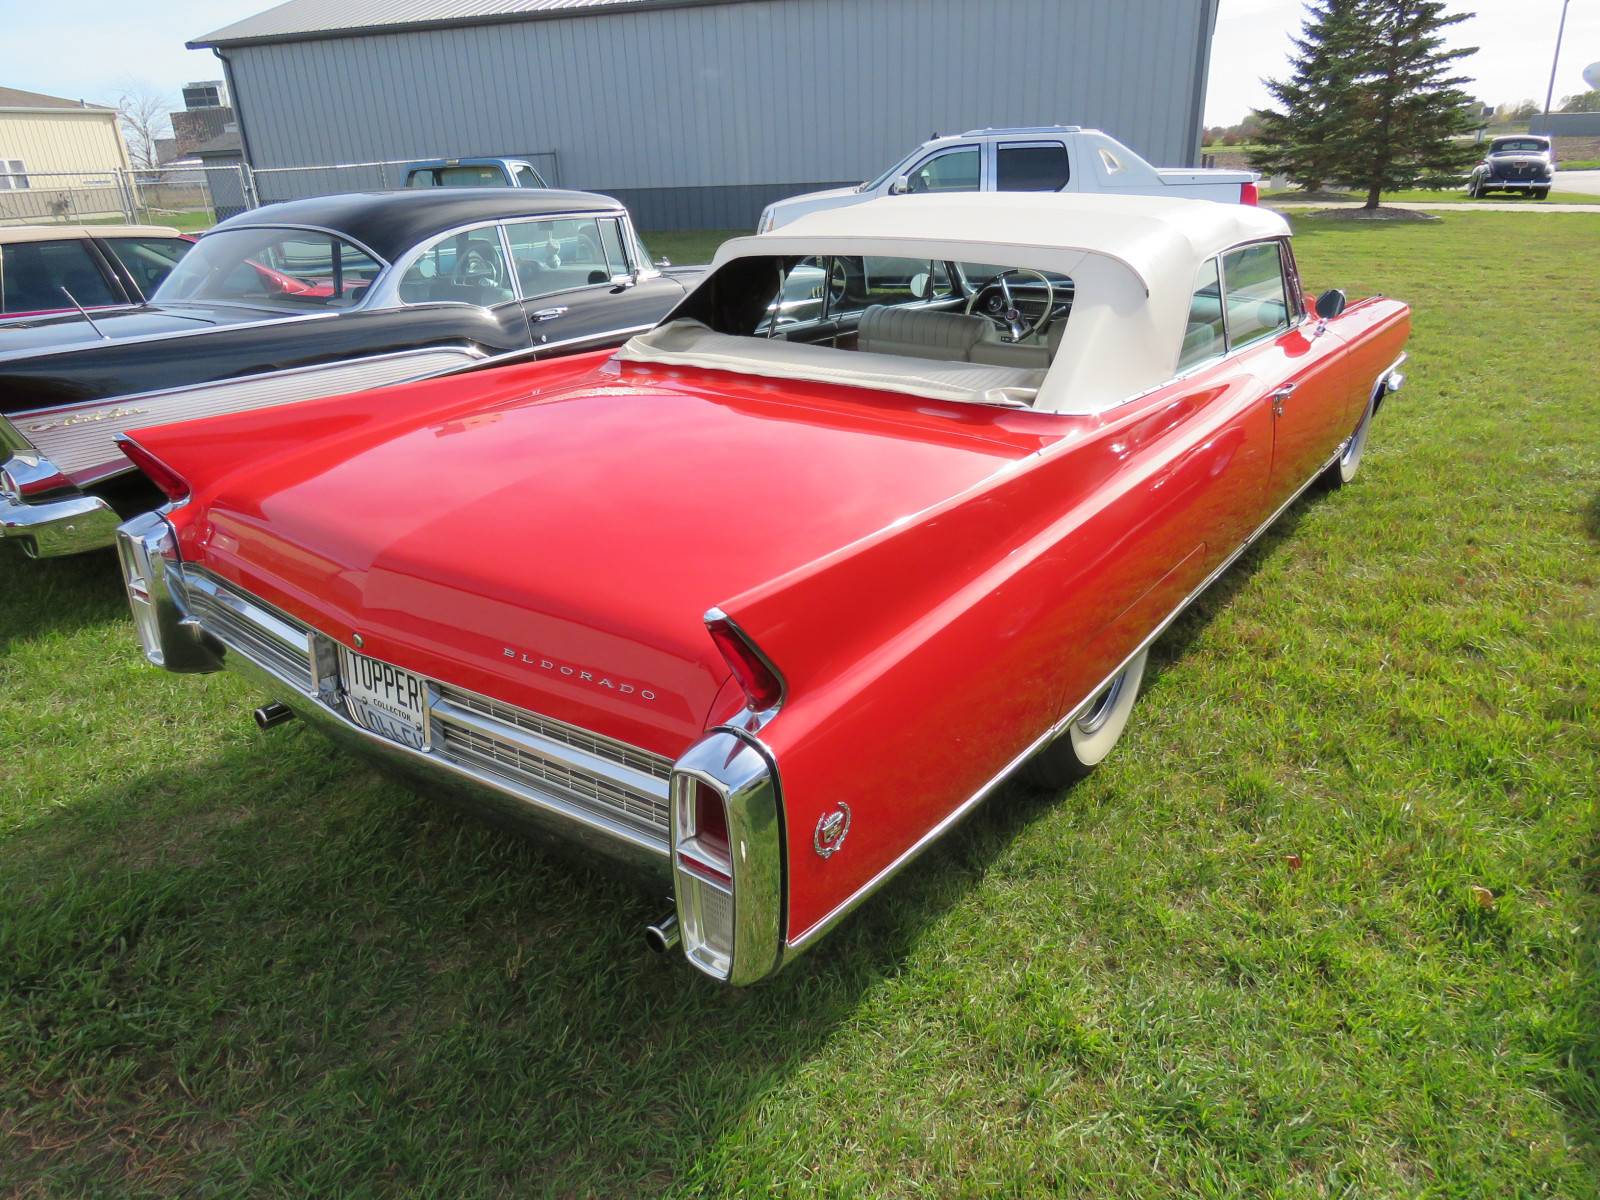 Beautiful 1963 Cadillac Eldorado Convertible - Image 5